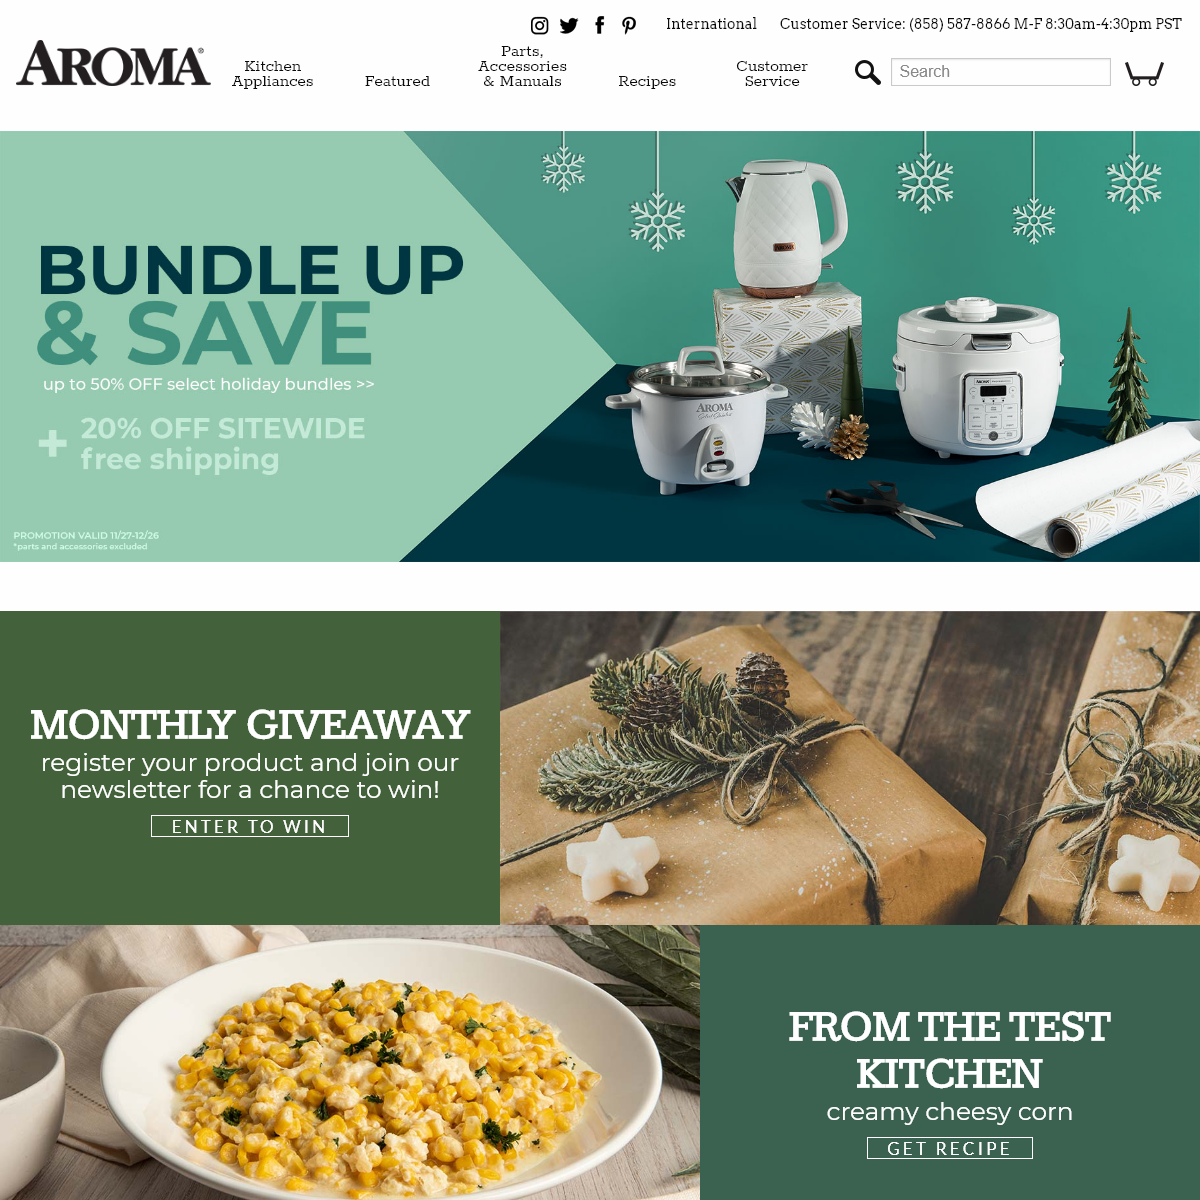 Aroma Housewares Small Kitchen Appliances, Recipes, Parts & Manuals